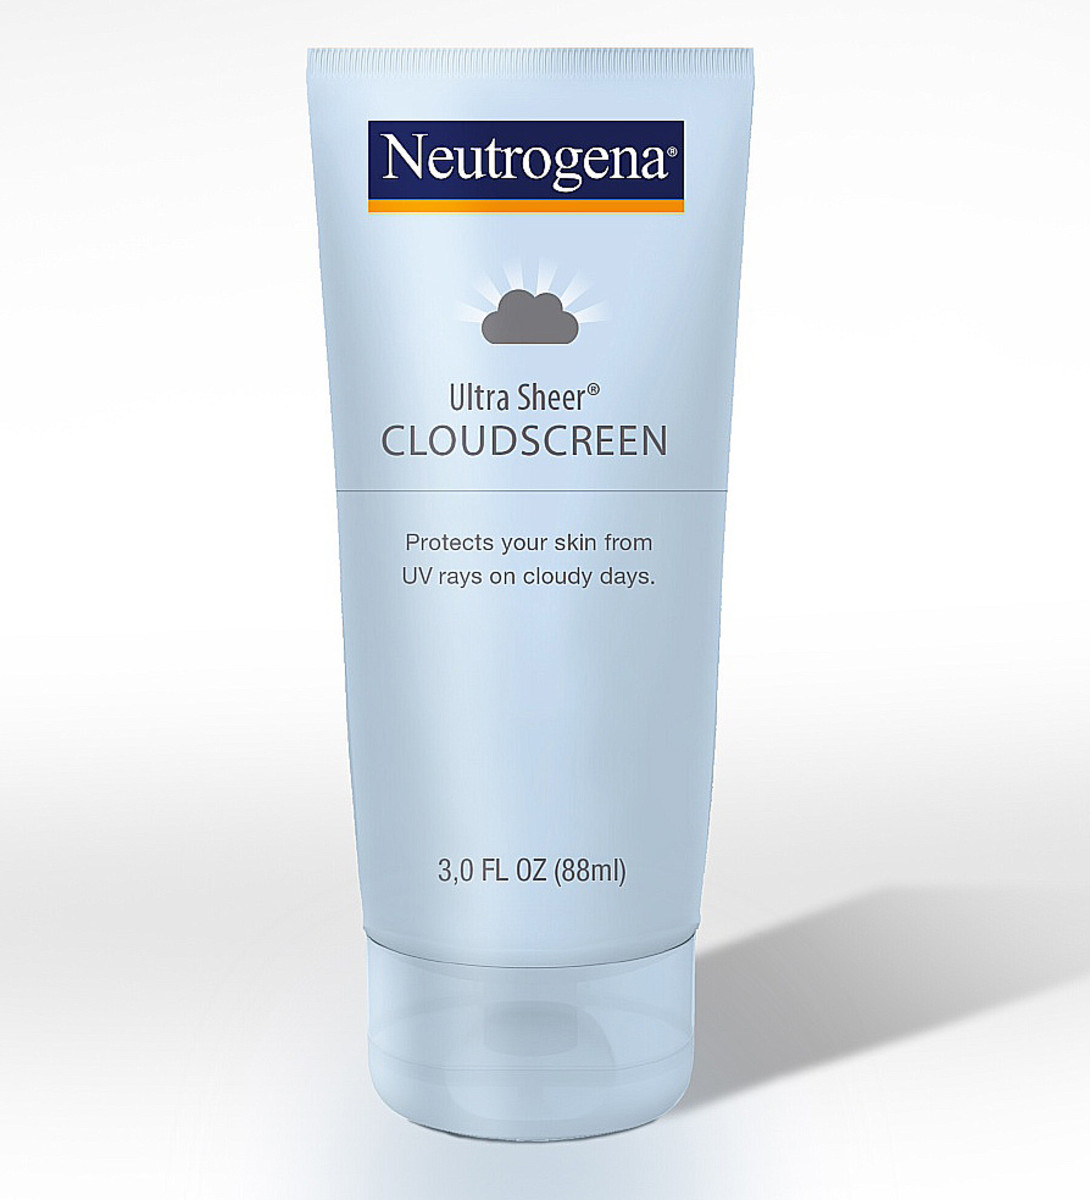 Neutrogena Ultra Sheer Cloudscreen sunscreen for cloudy days